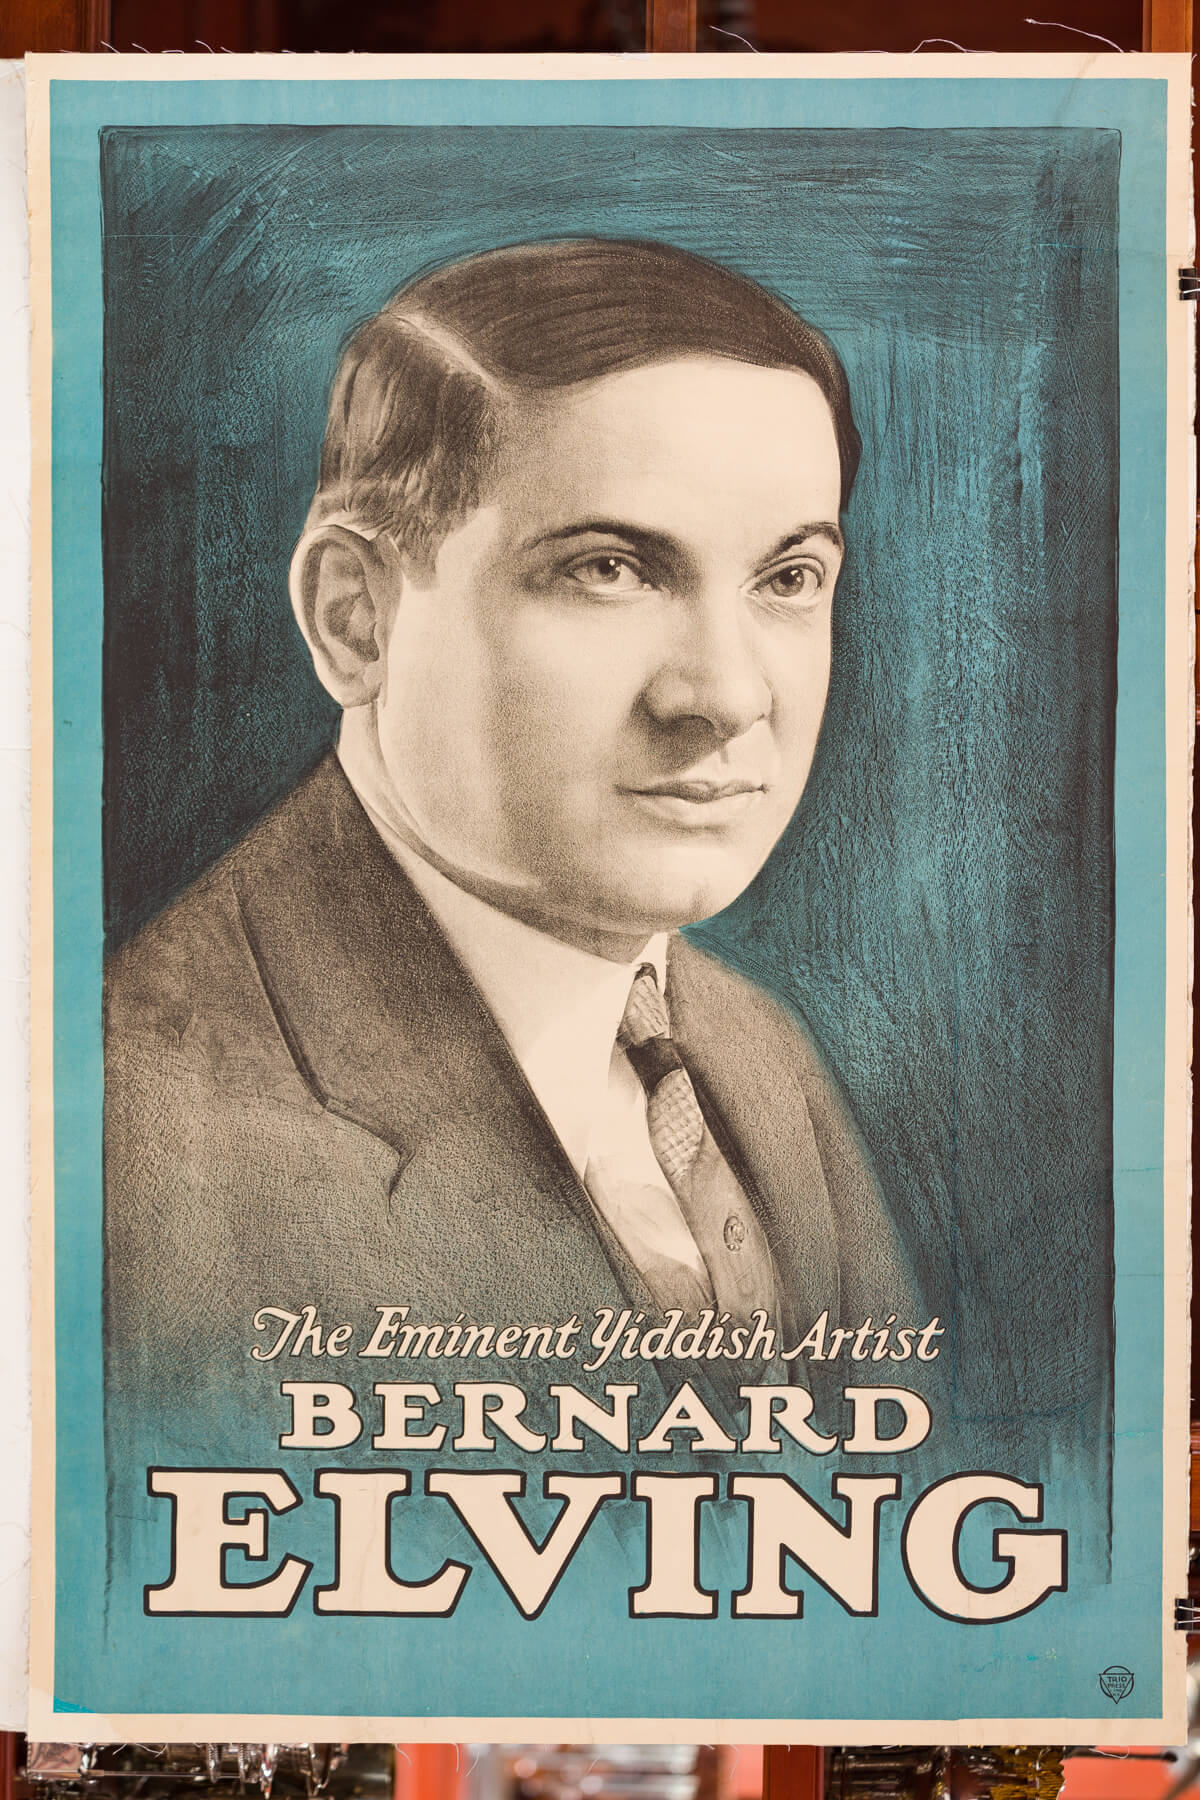 174. Yiddish Theatre Poster: Bernard Elving